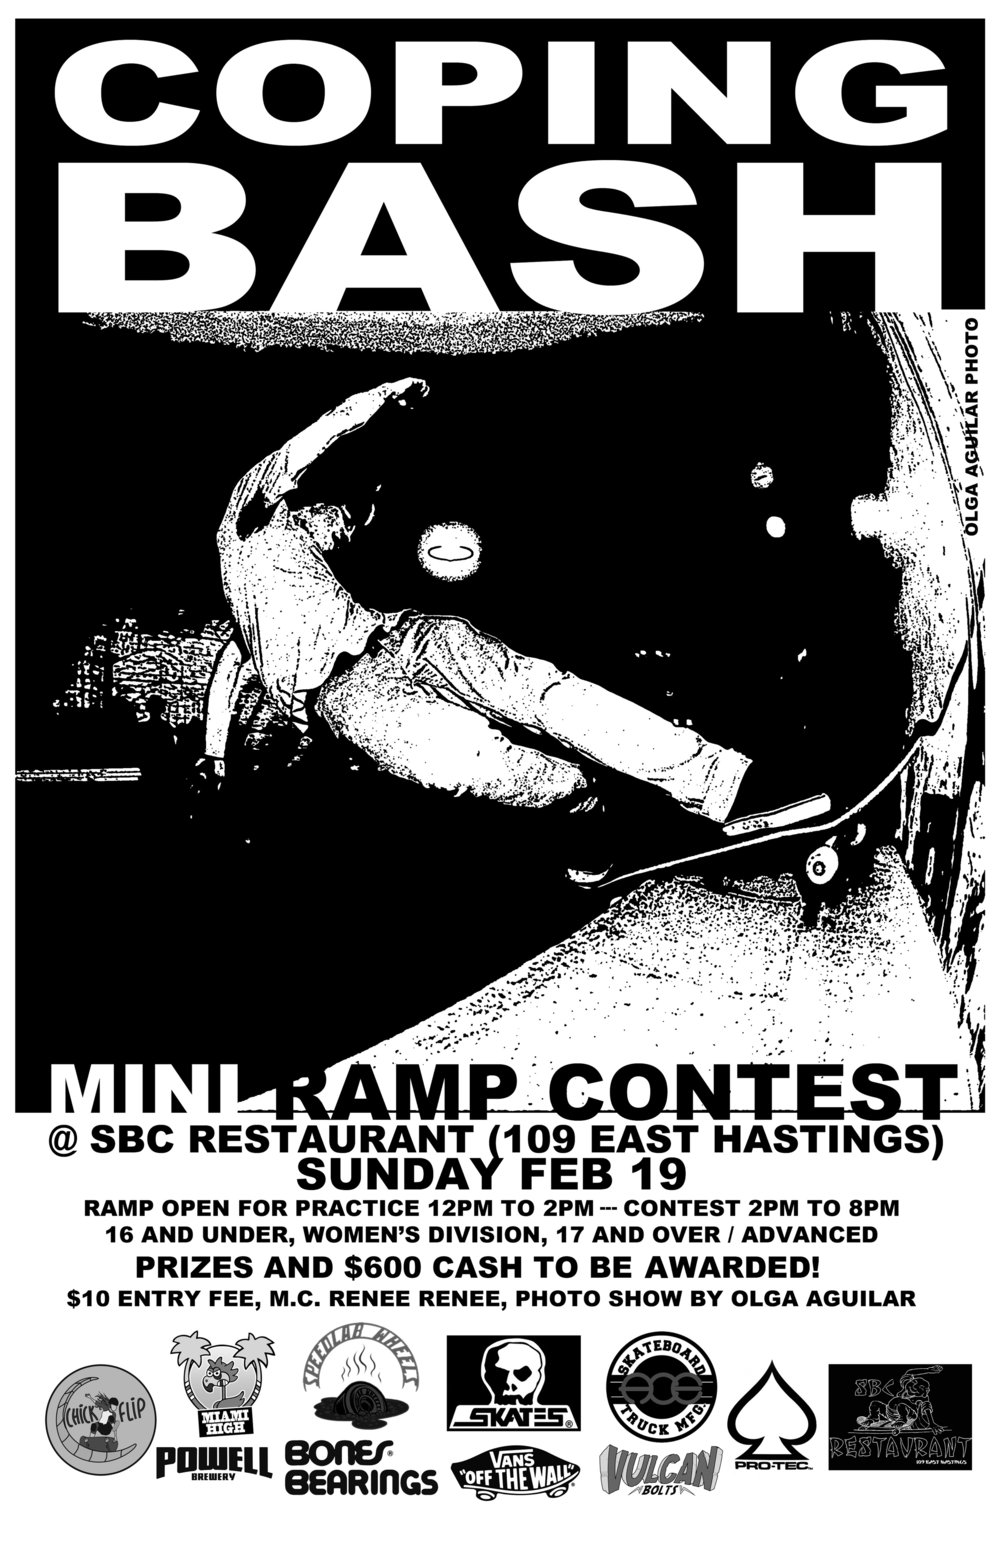 coping bash contest